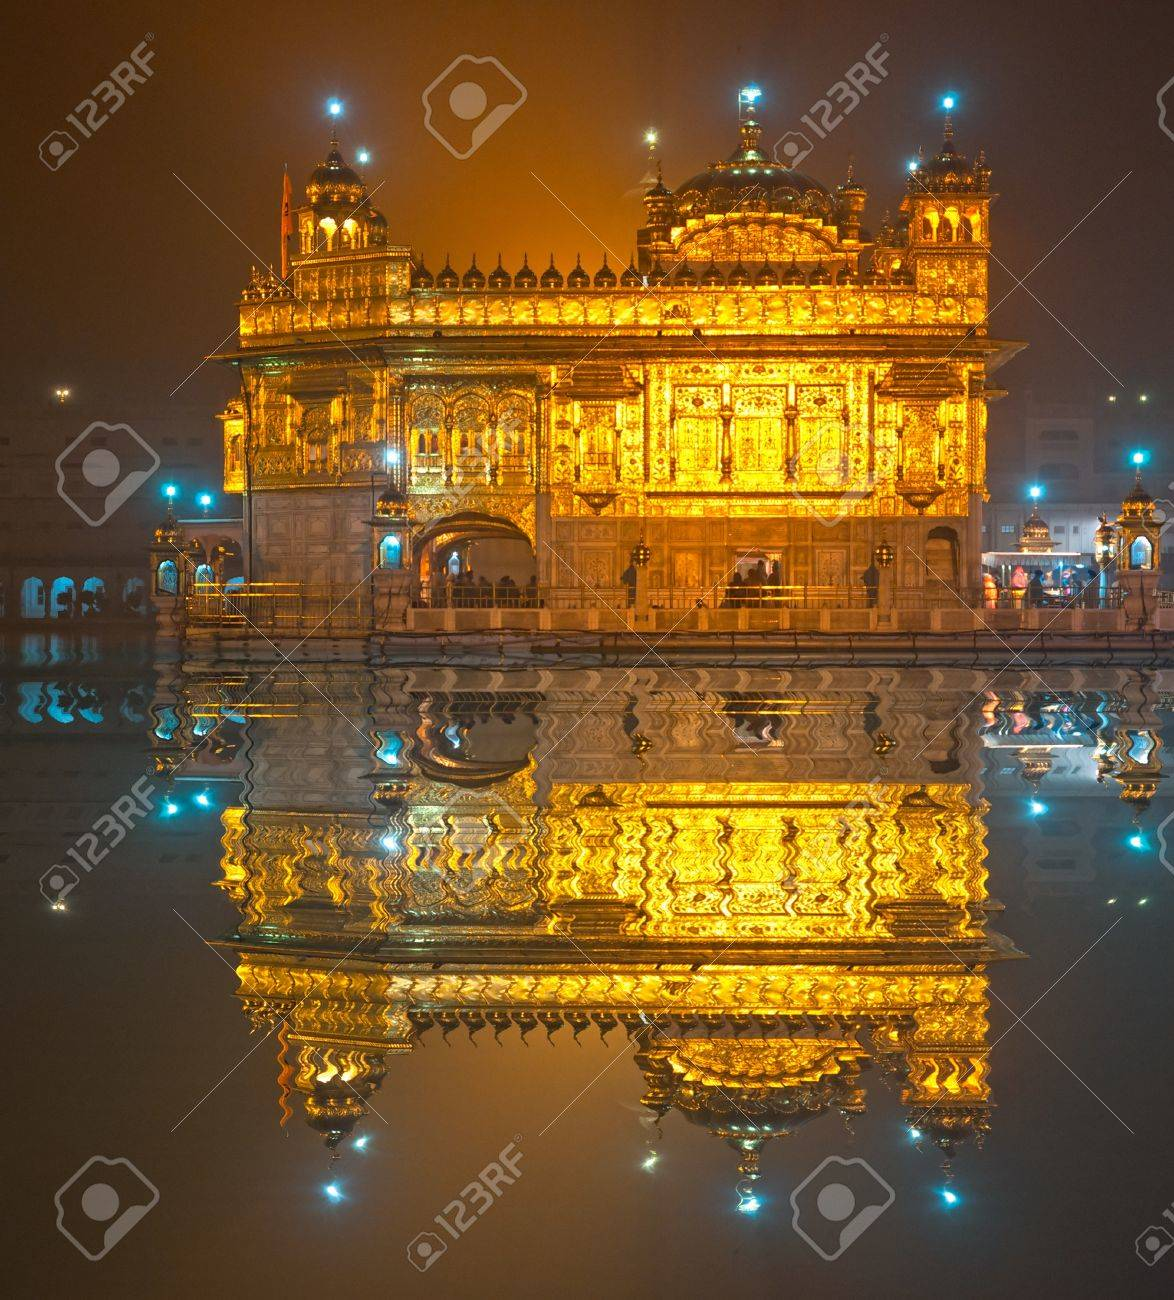 golden temple in amritsar, punjab, india. stock photo, picture and